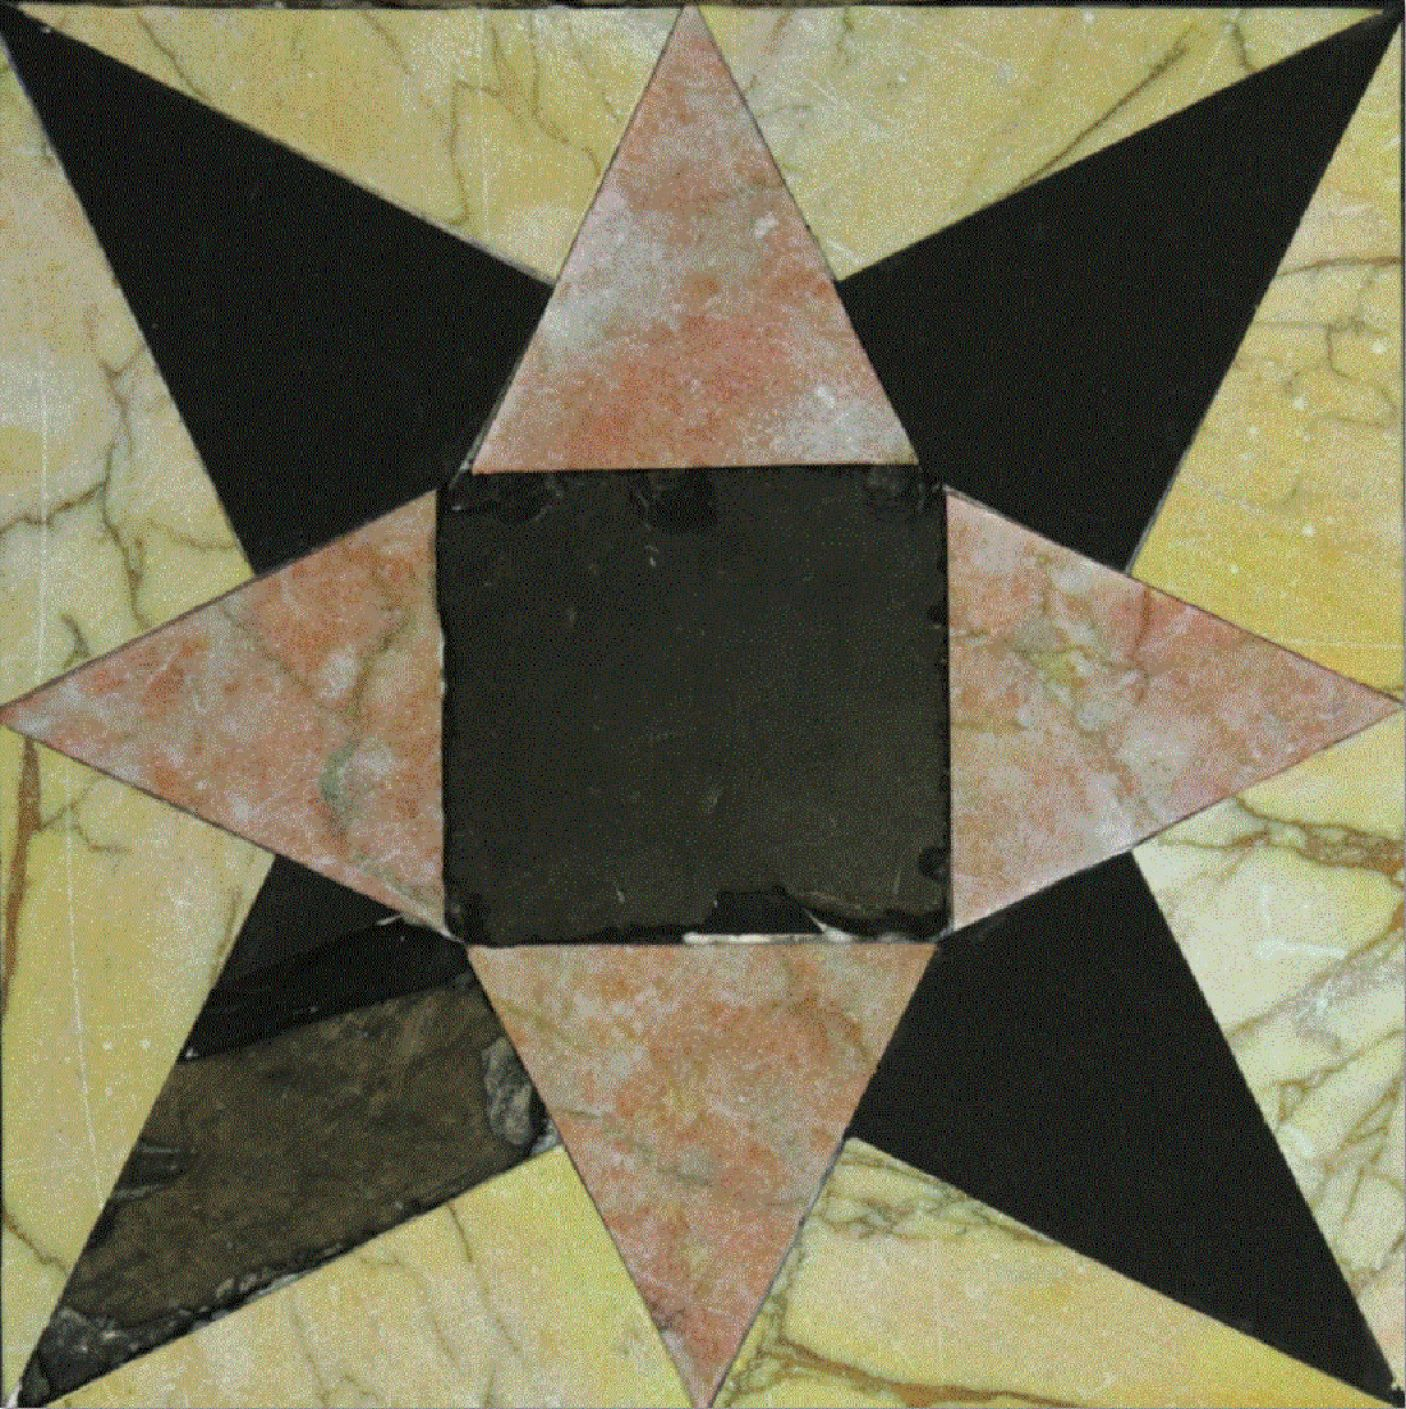 8-Pointed Star Tile from Herod's Second Temple. Photo: Temple Mount Sifting Project.